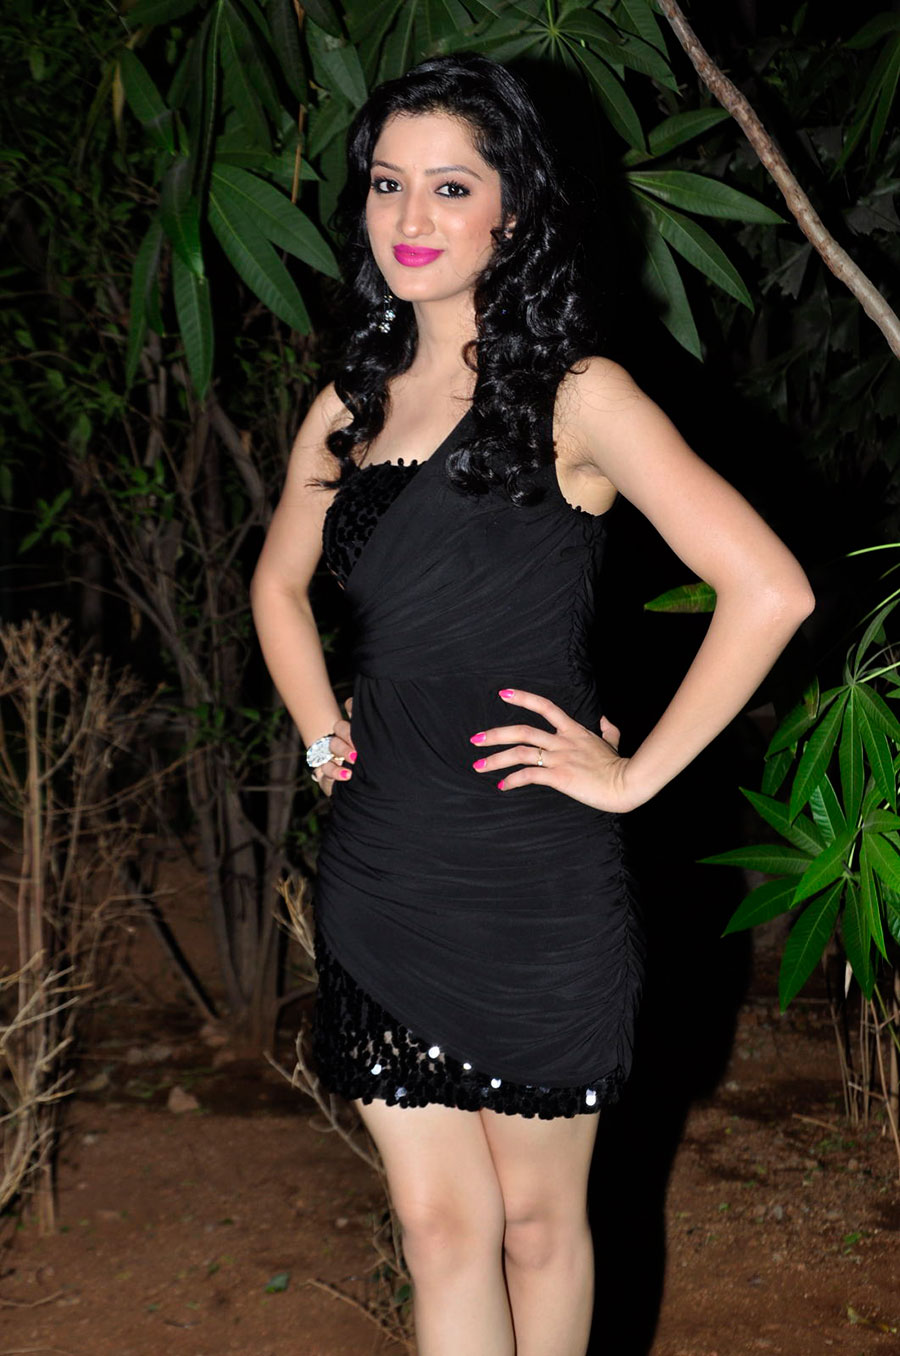 hot Glamorous richa panai new hot photo gallery